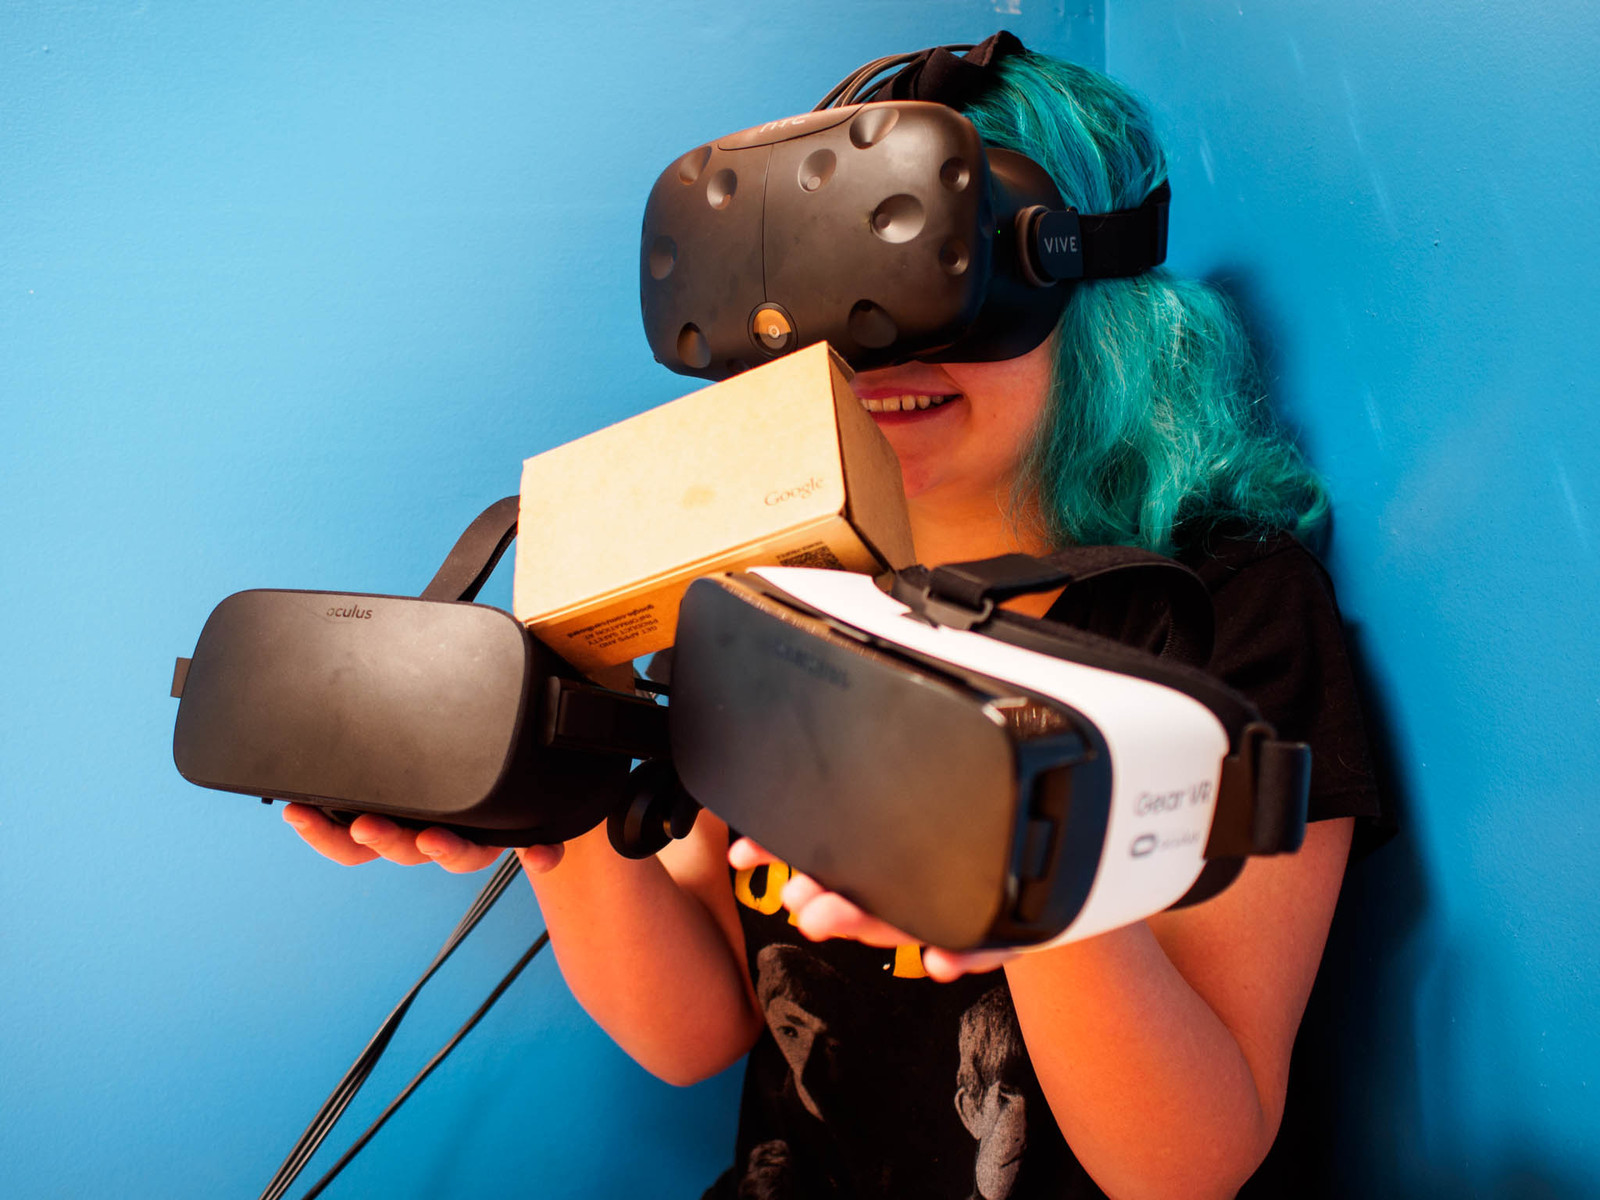 Tips to avoid motion sickness caused by VR gaming